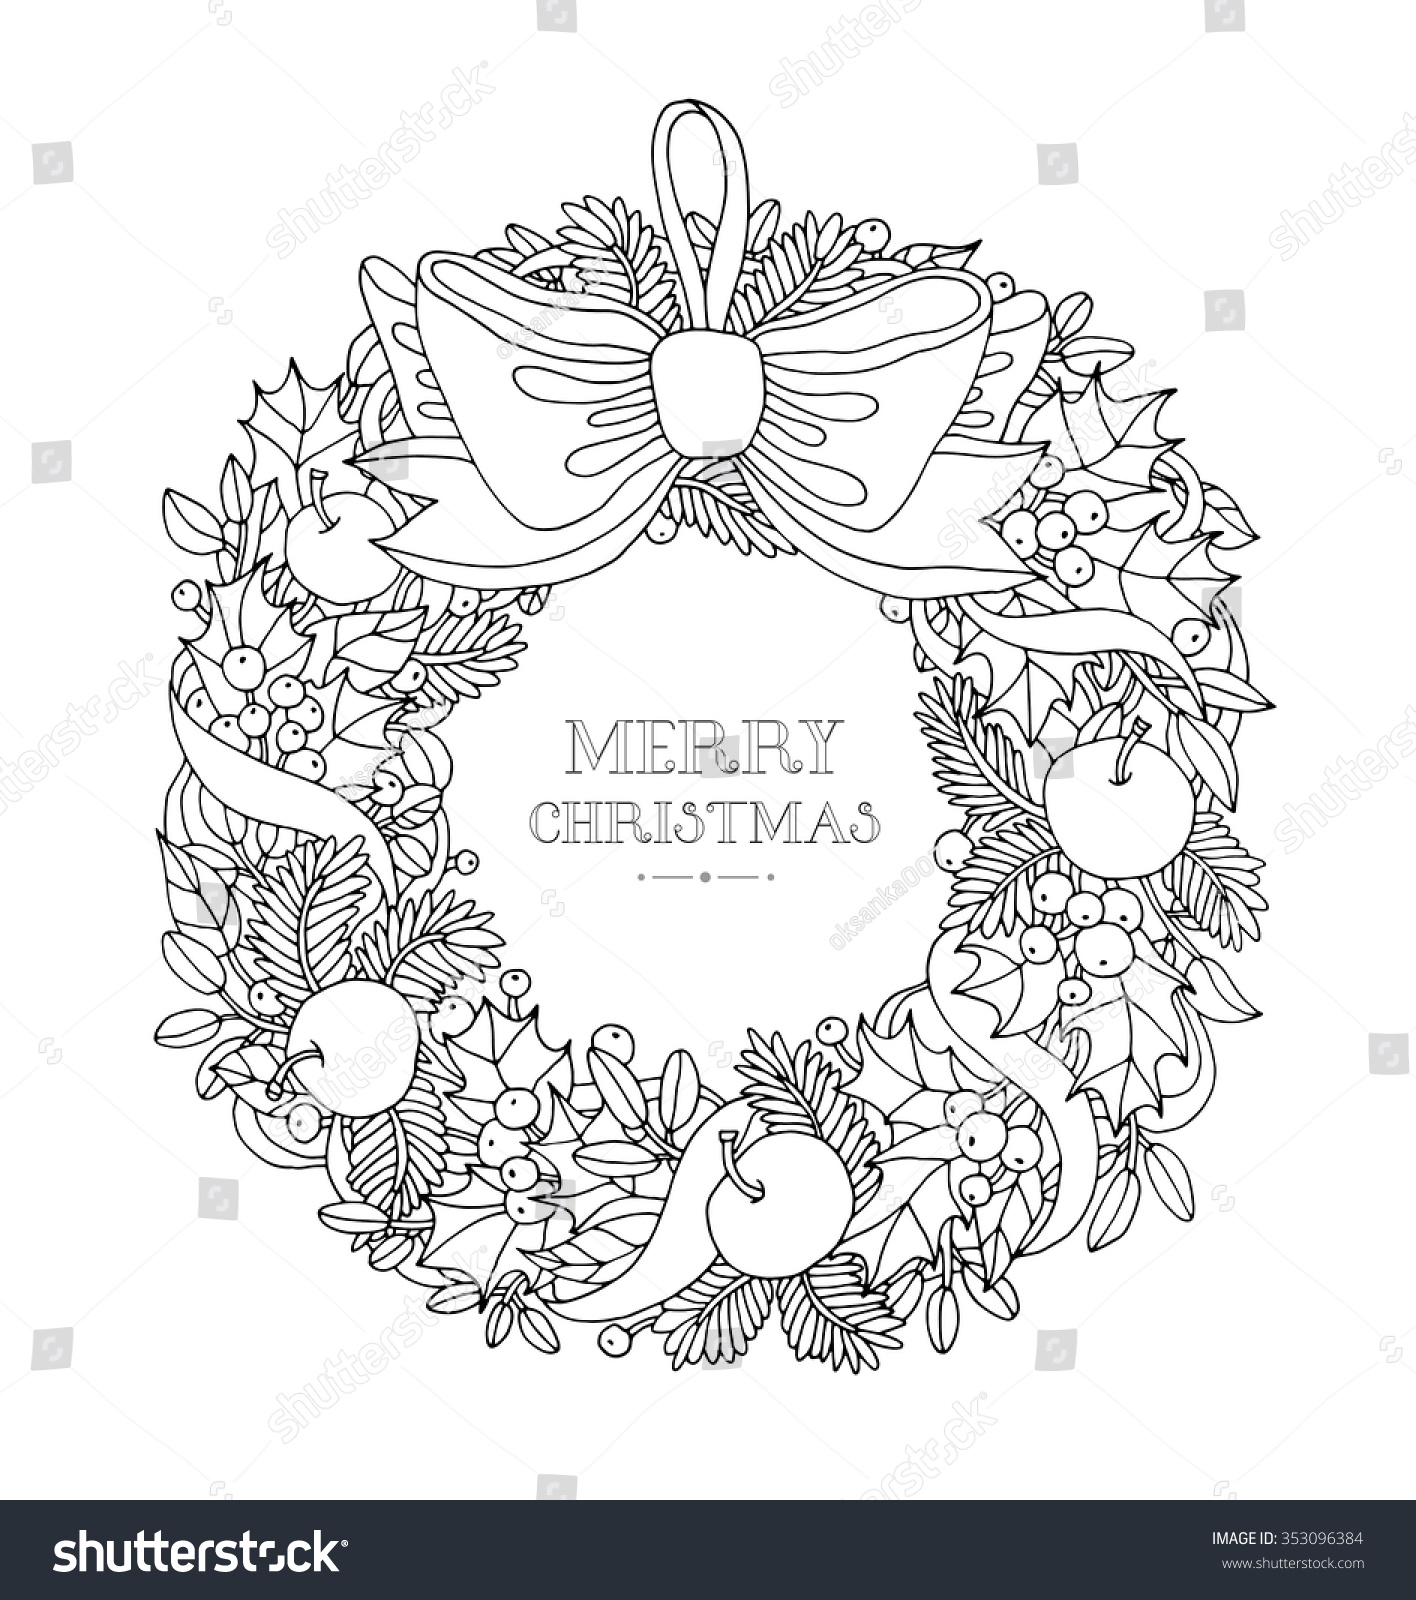 Christmas Colouring Pages Holly With Wreath Bow Ribbon Forest Stock Vector 353096384